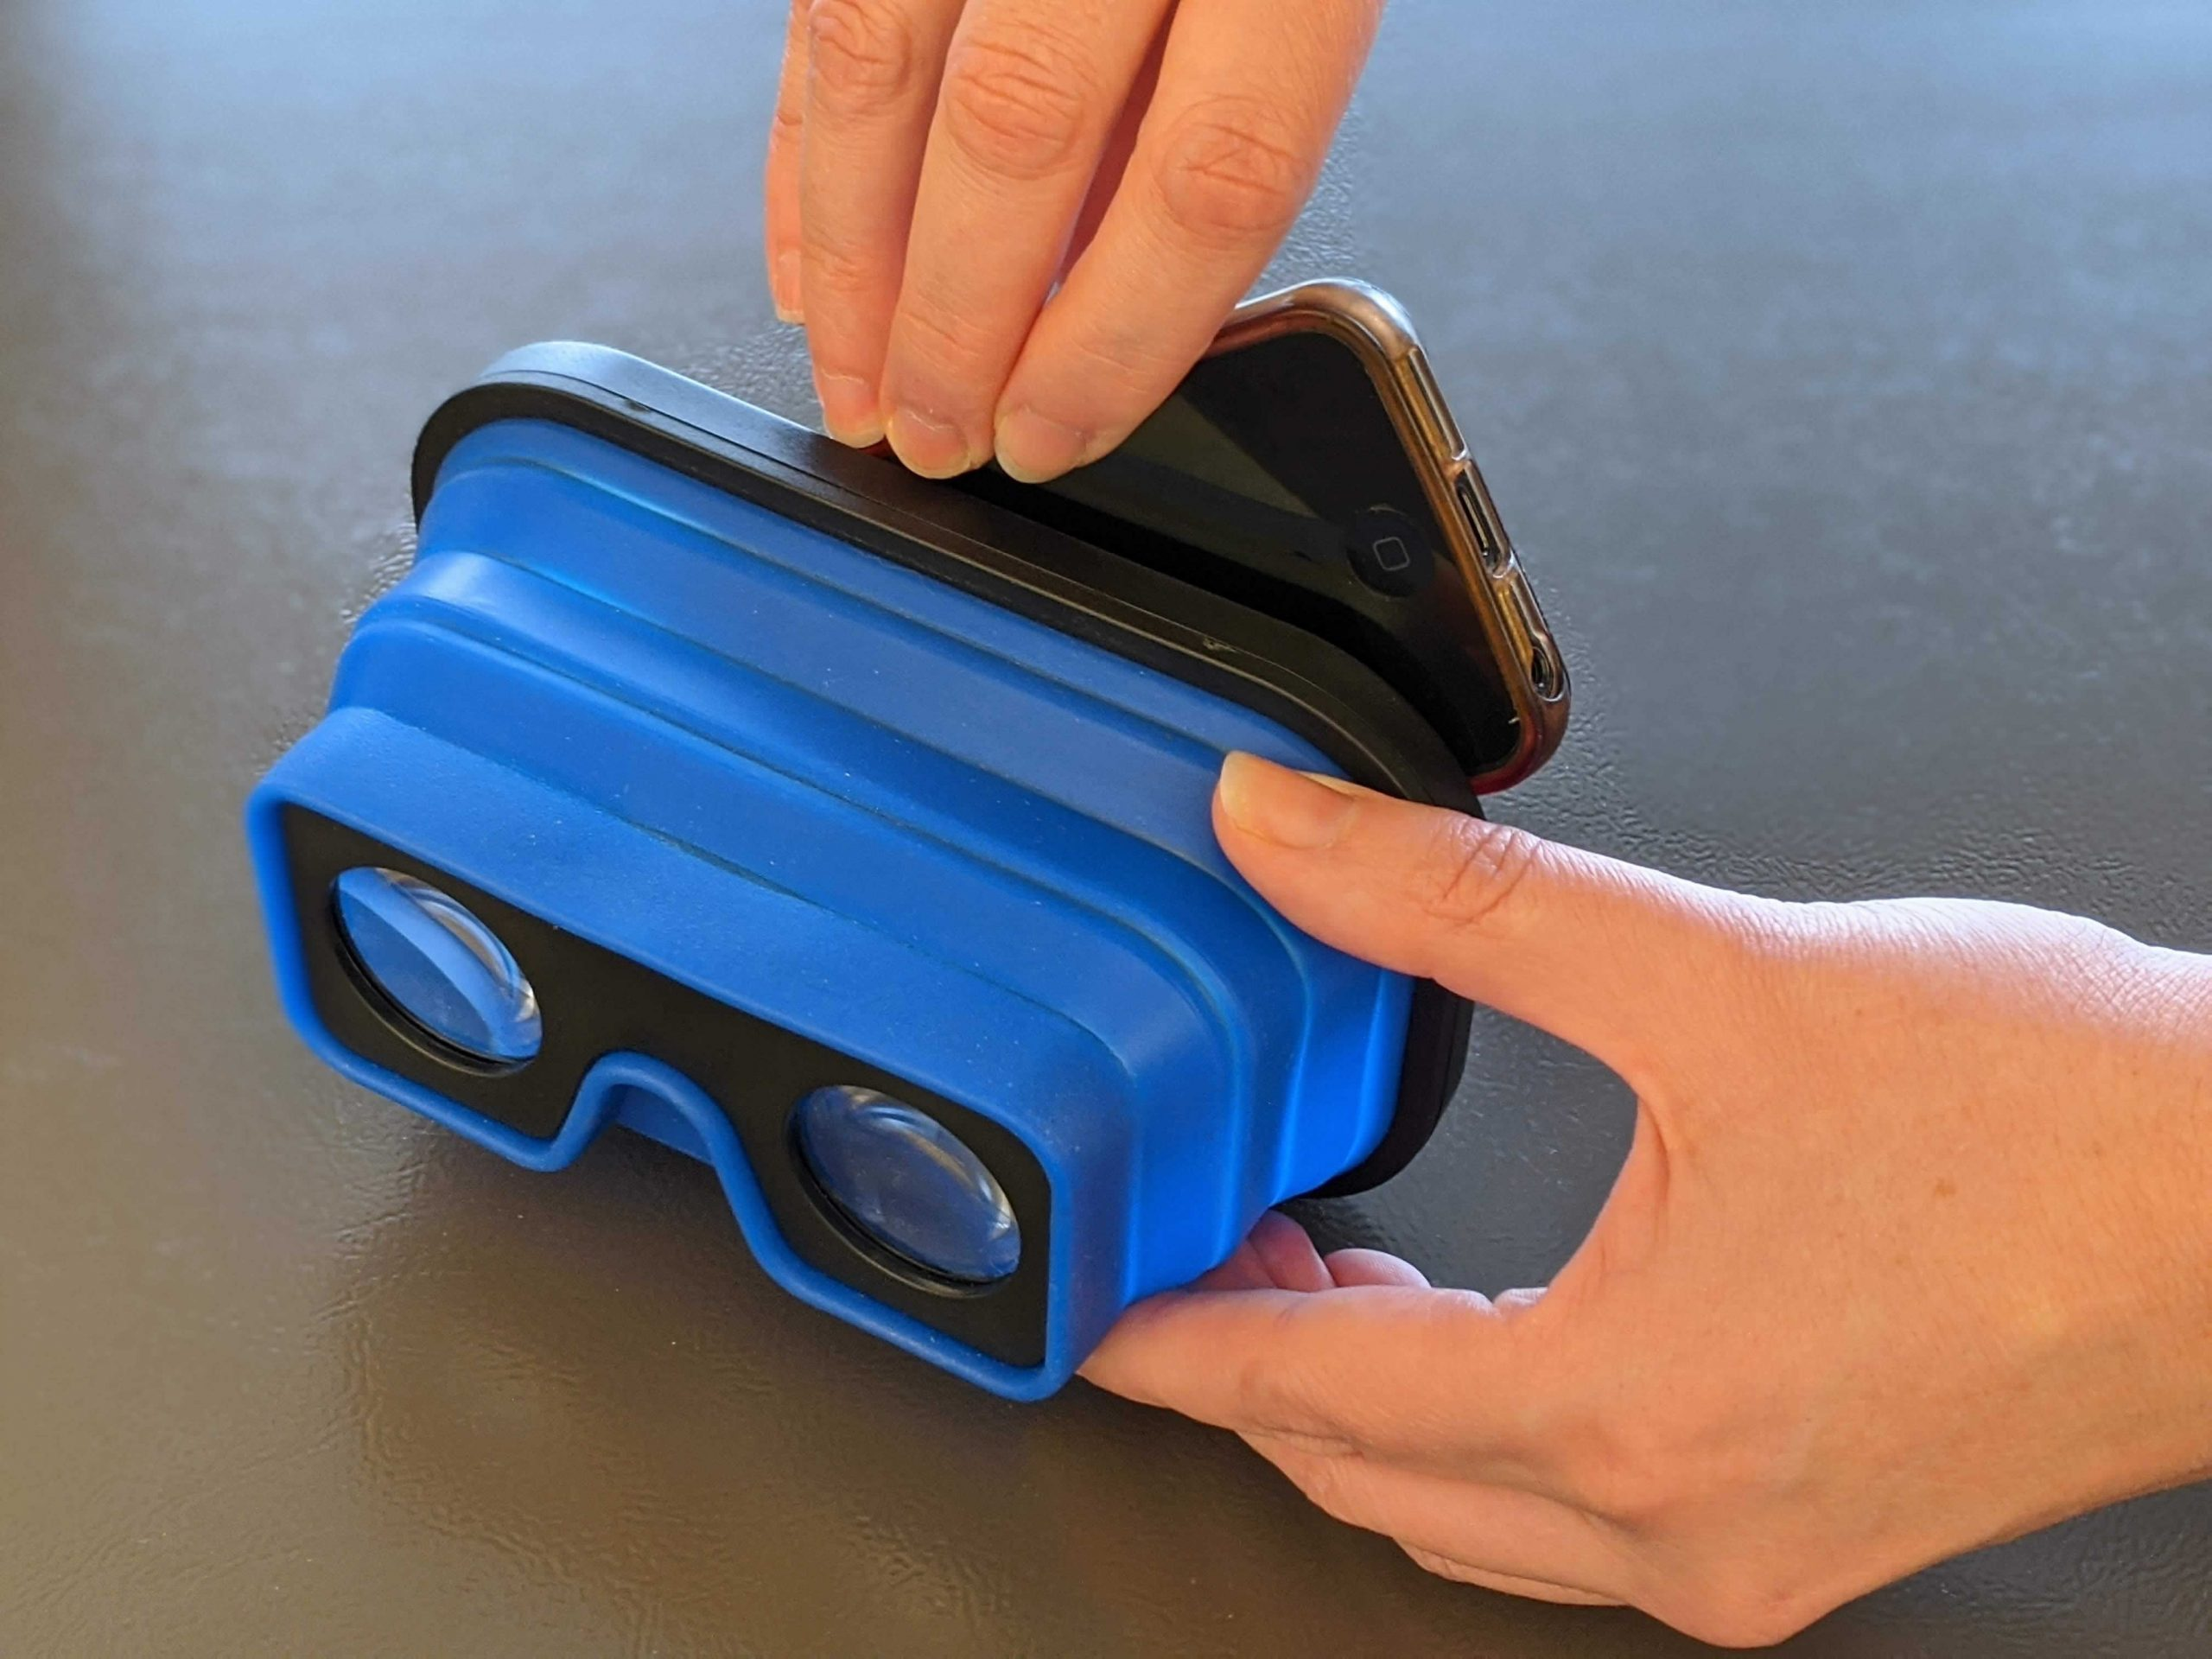 VR Viewer and Phone